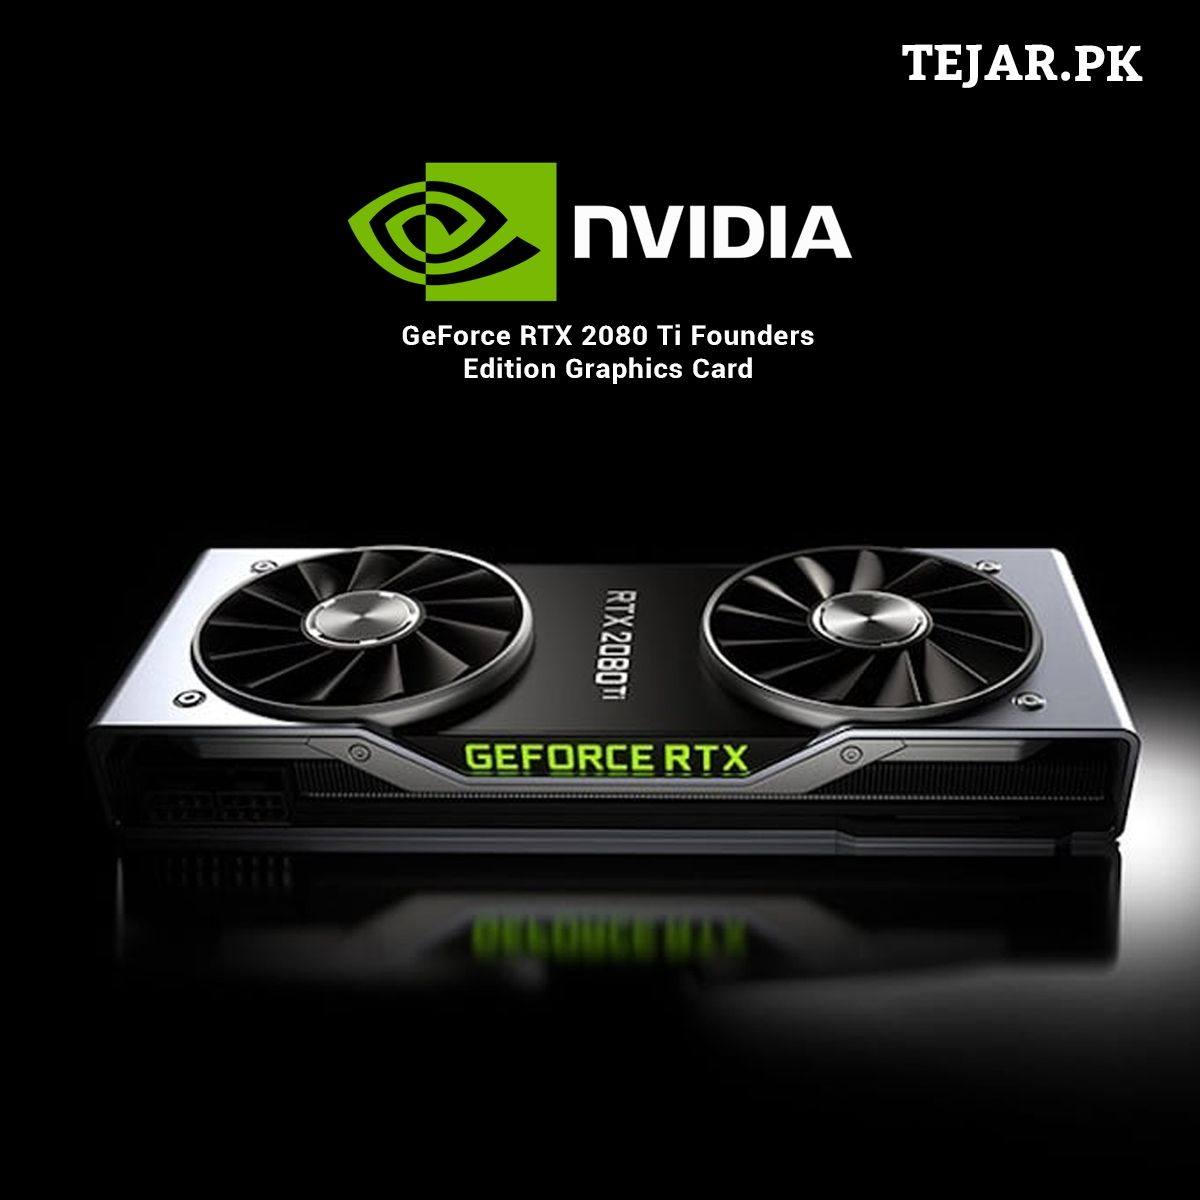 Nvidia Geforce Rtx 2080 Ti Founders Edition Graphics Card Graphic Card Nvidia Buy Computer